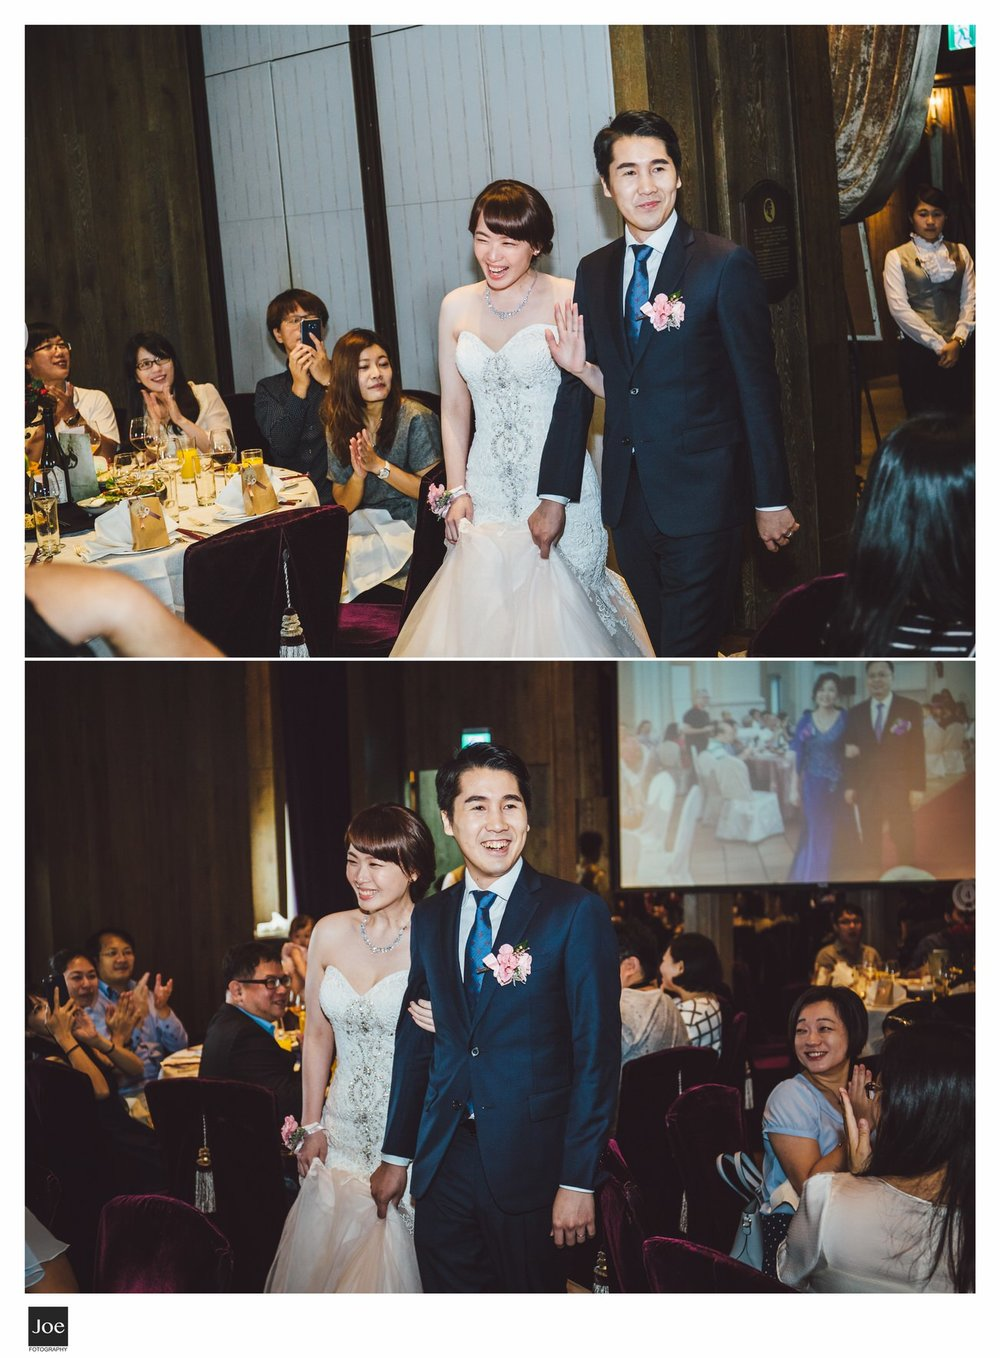 joe-fotography-wedding-photo-palais-de-chine-hotel-021.jpg